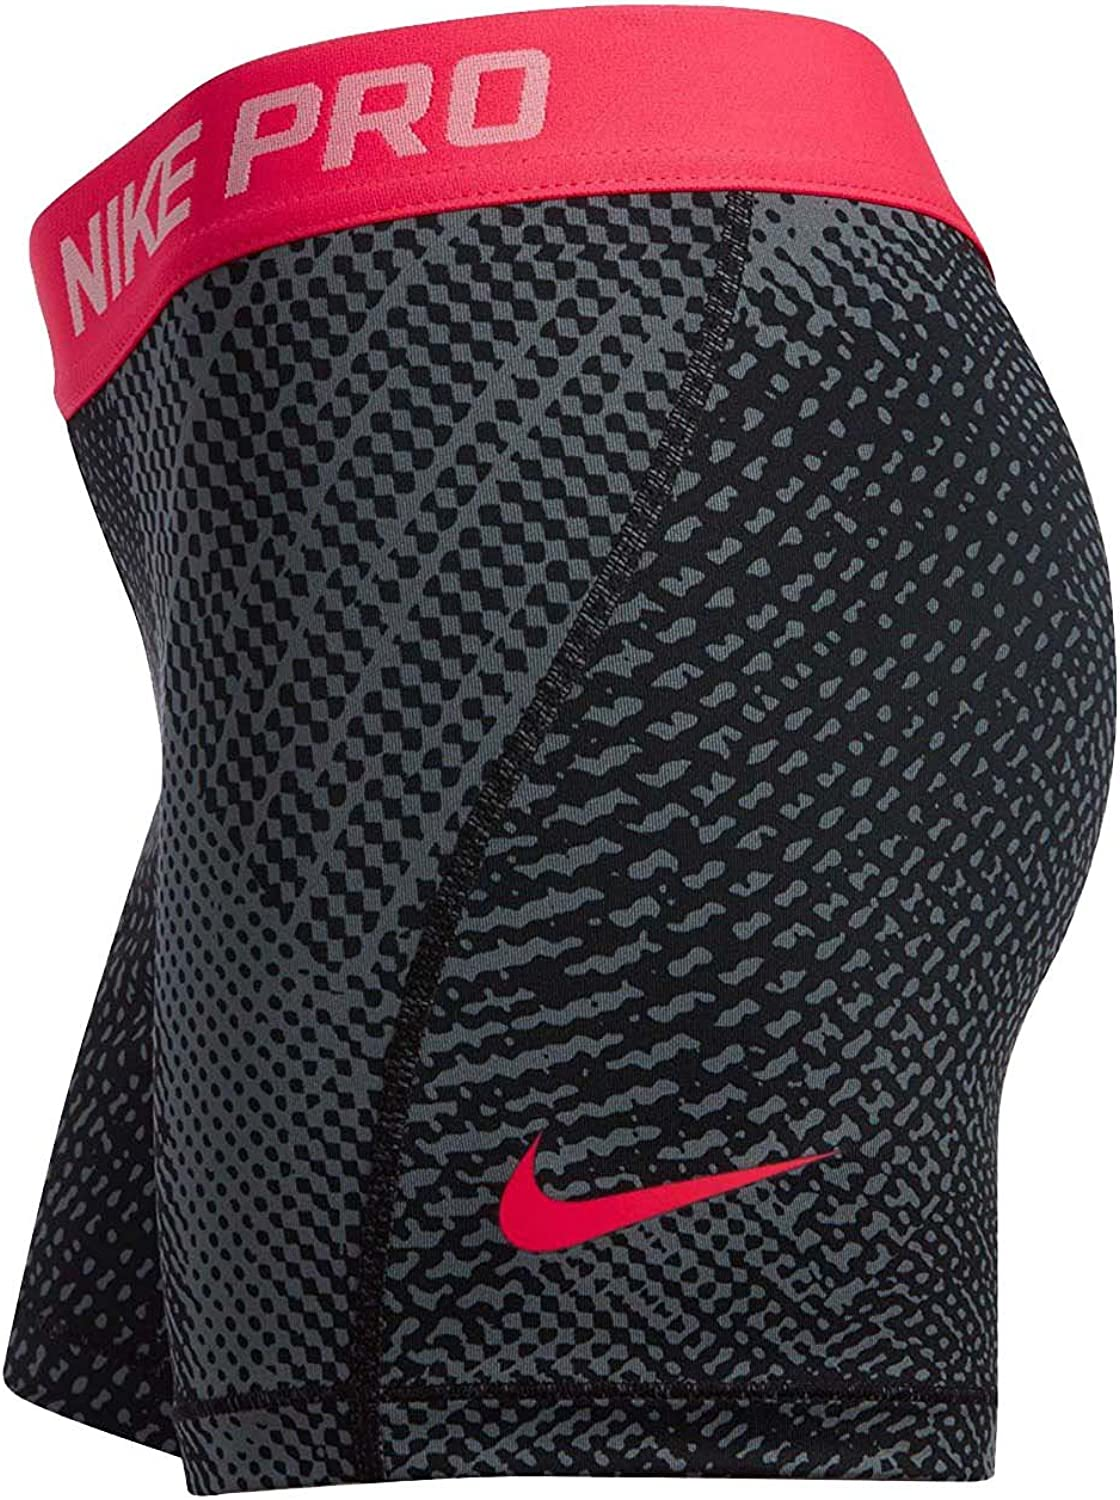 Nike Girls 4 Pro Cool Tempest Printed Shorts